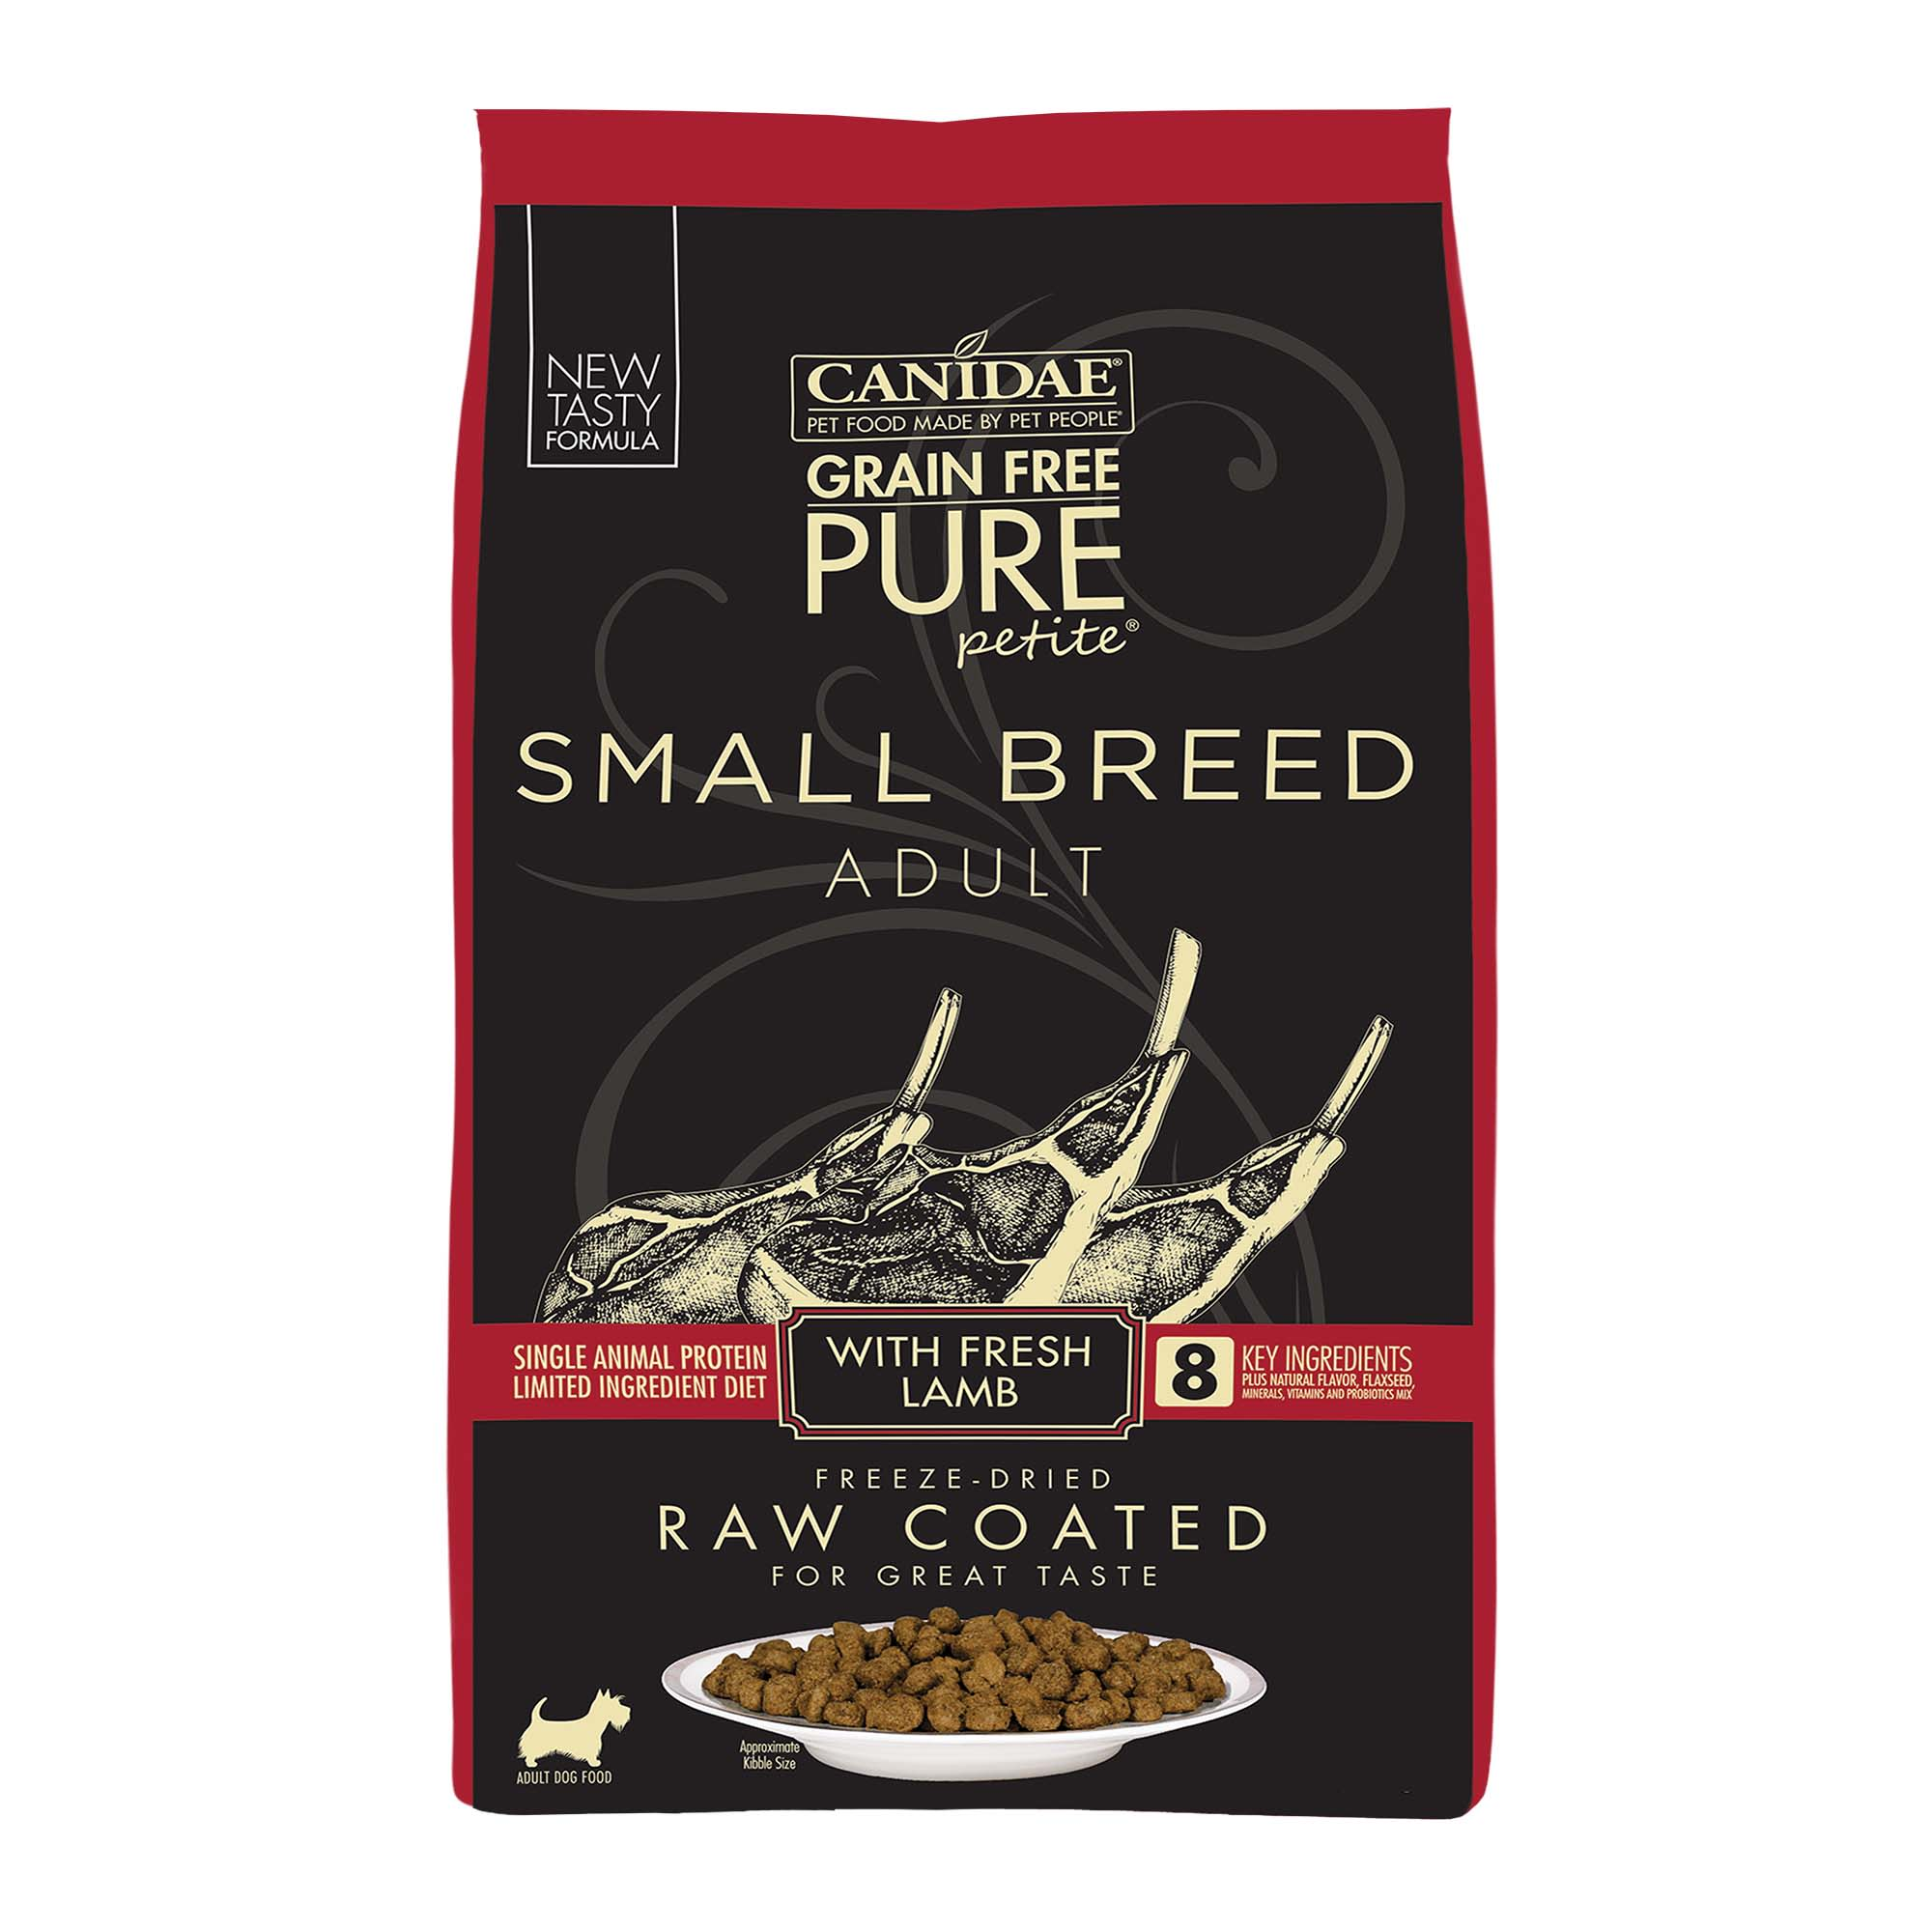 Canidae PURE Grain Free Petite Small Breed Limited Ingredient Diet with Fresh Lamb Freeze Dried Raw Coated Dry Dog Food, 4 lbs.